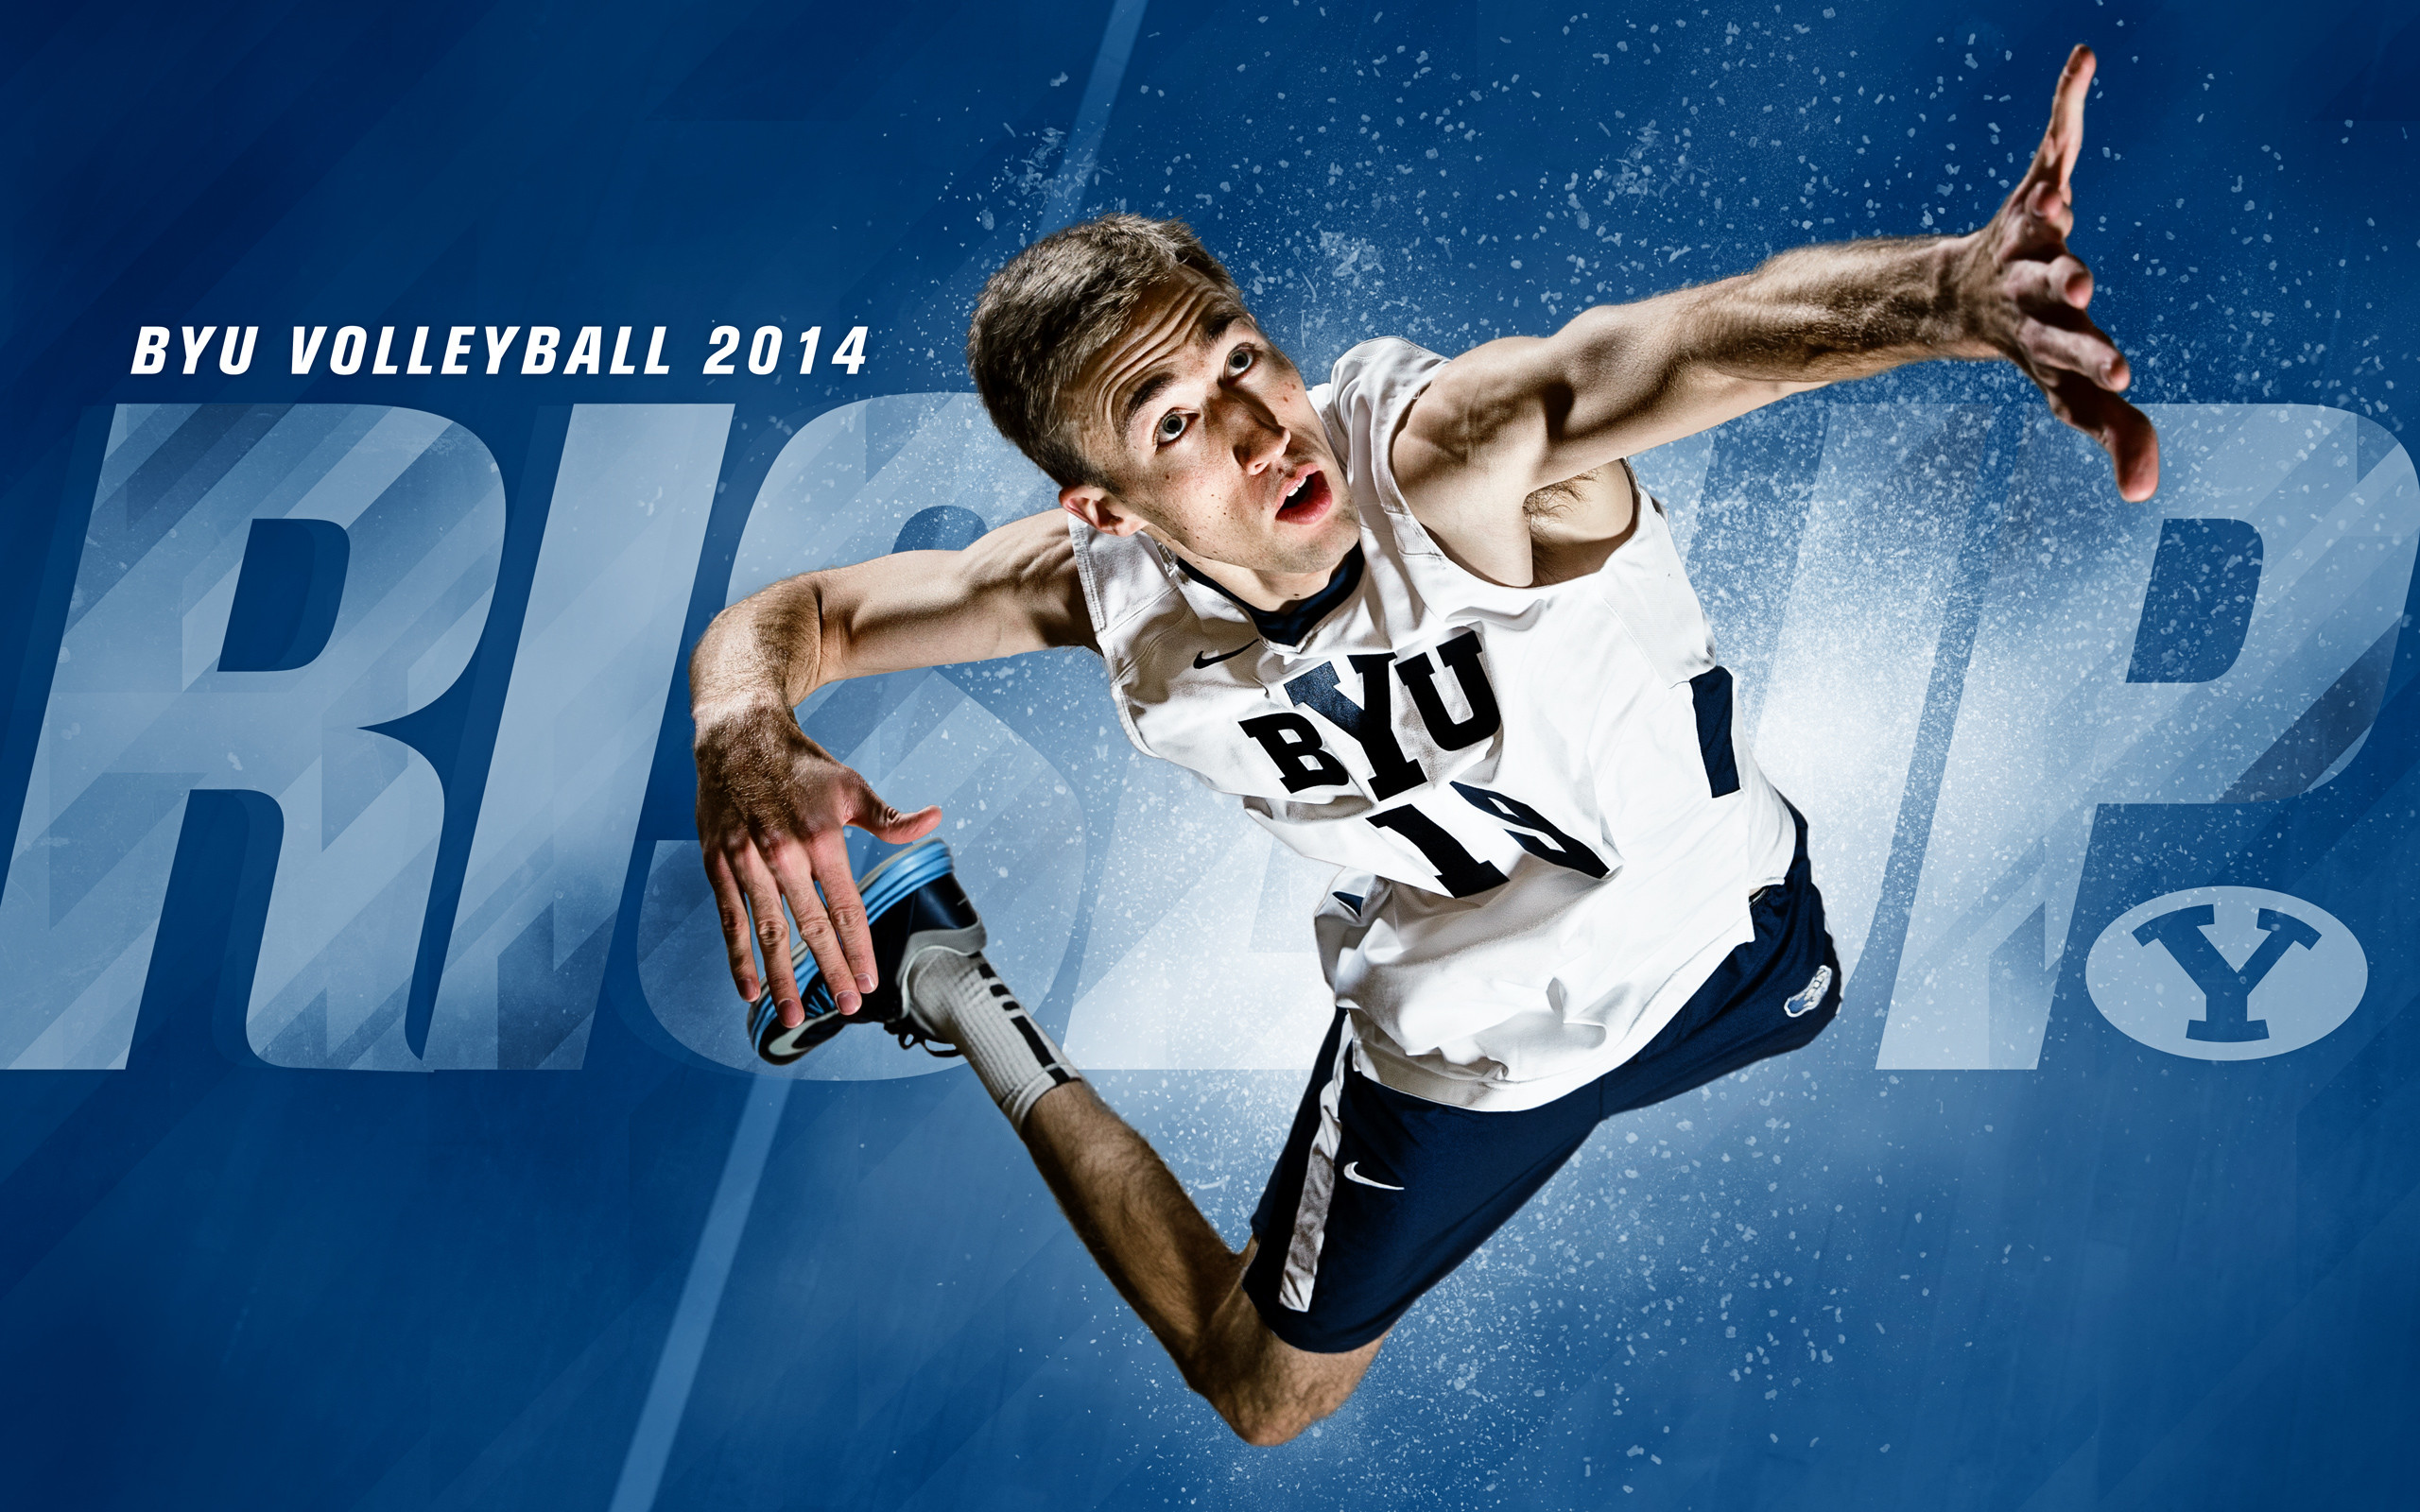 2560x1600 2014 - Devin Young - BYU Volleyball Wallpaper 2014